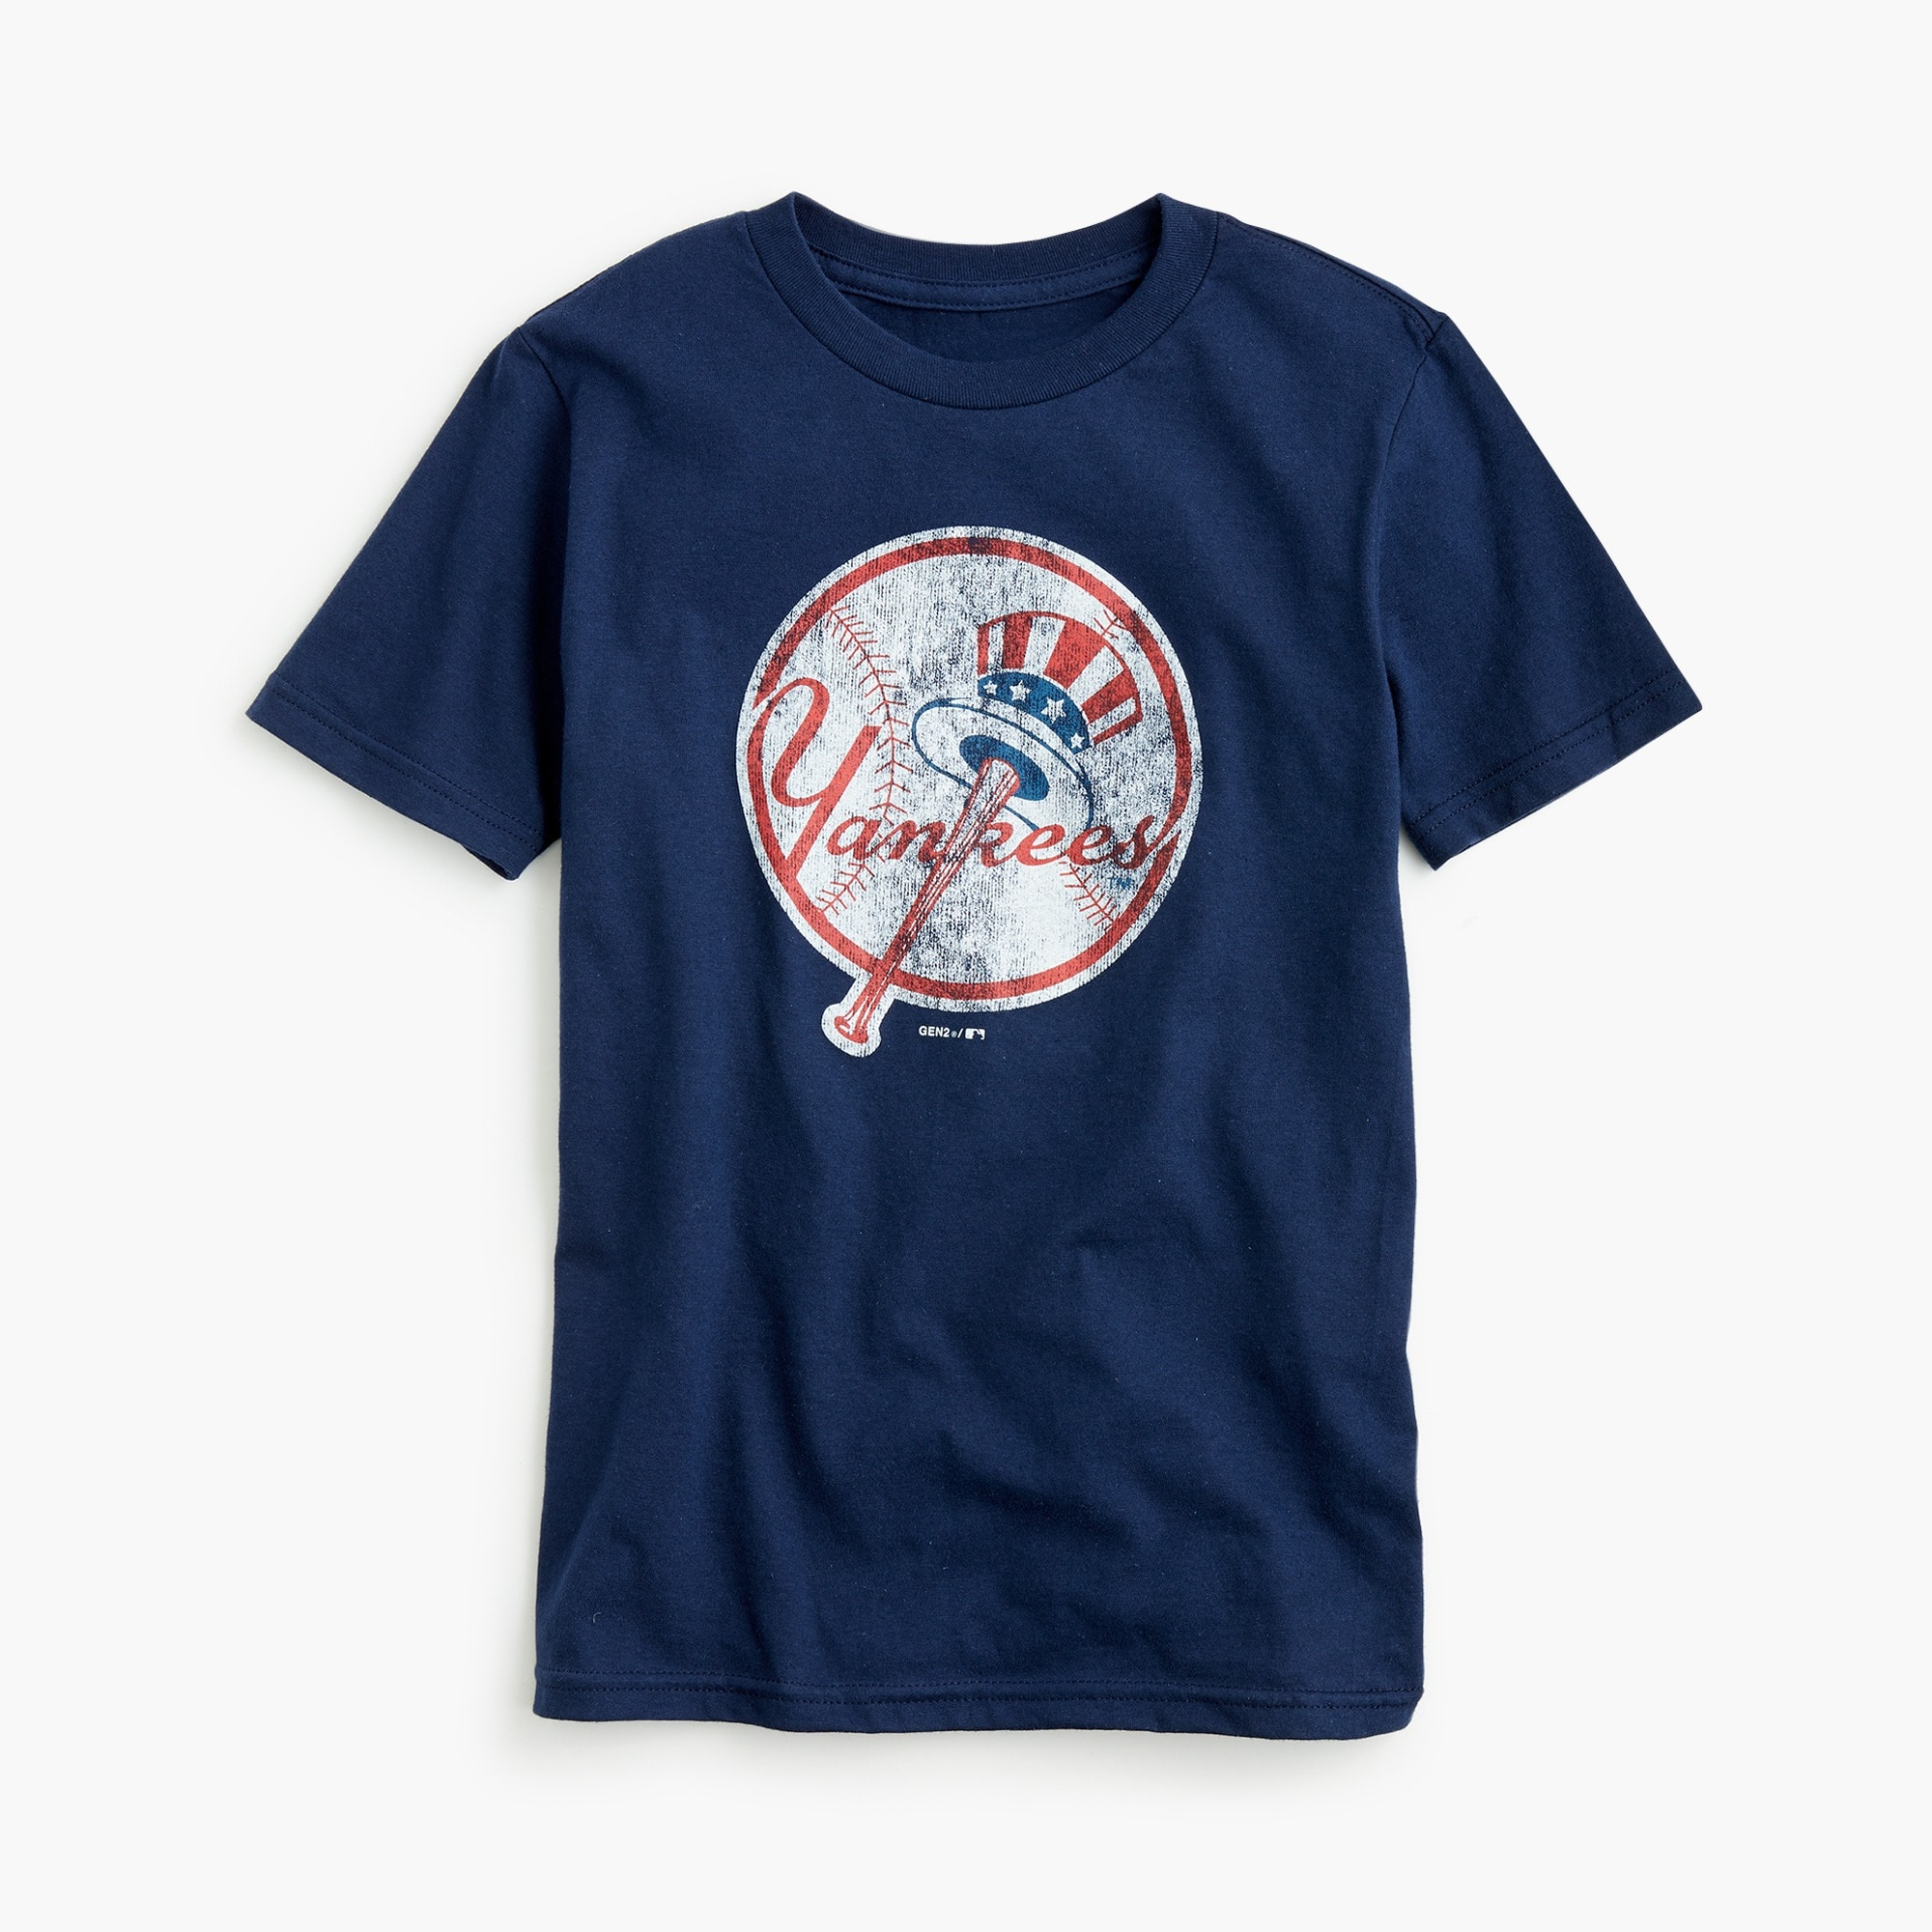 Kids' New York Yankees T-shirt boy graphics shop c